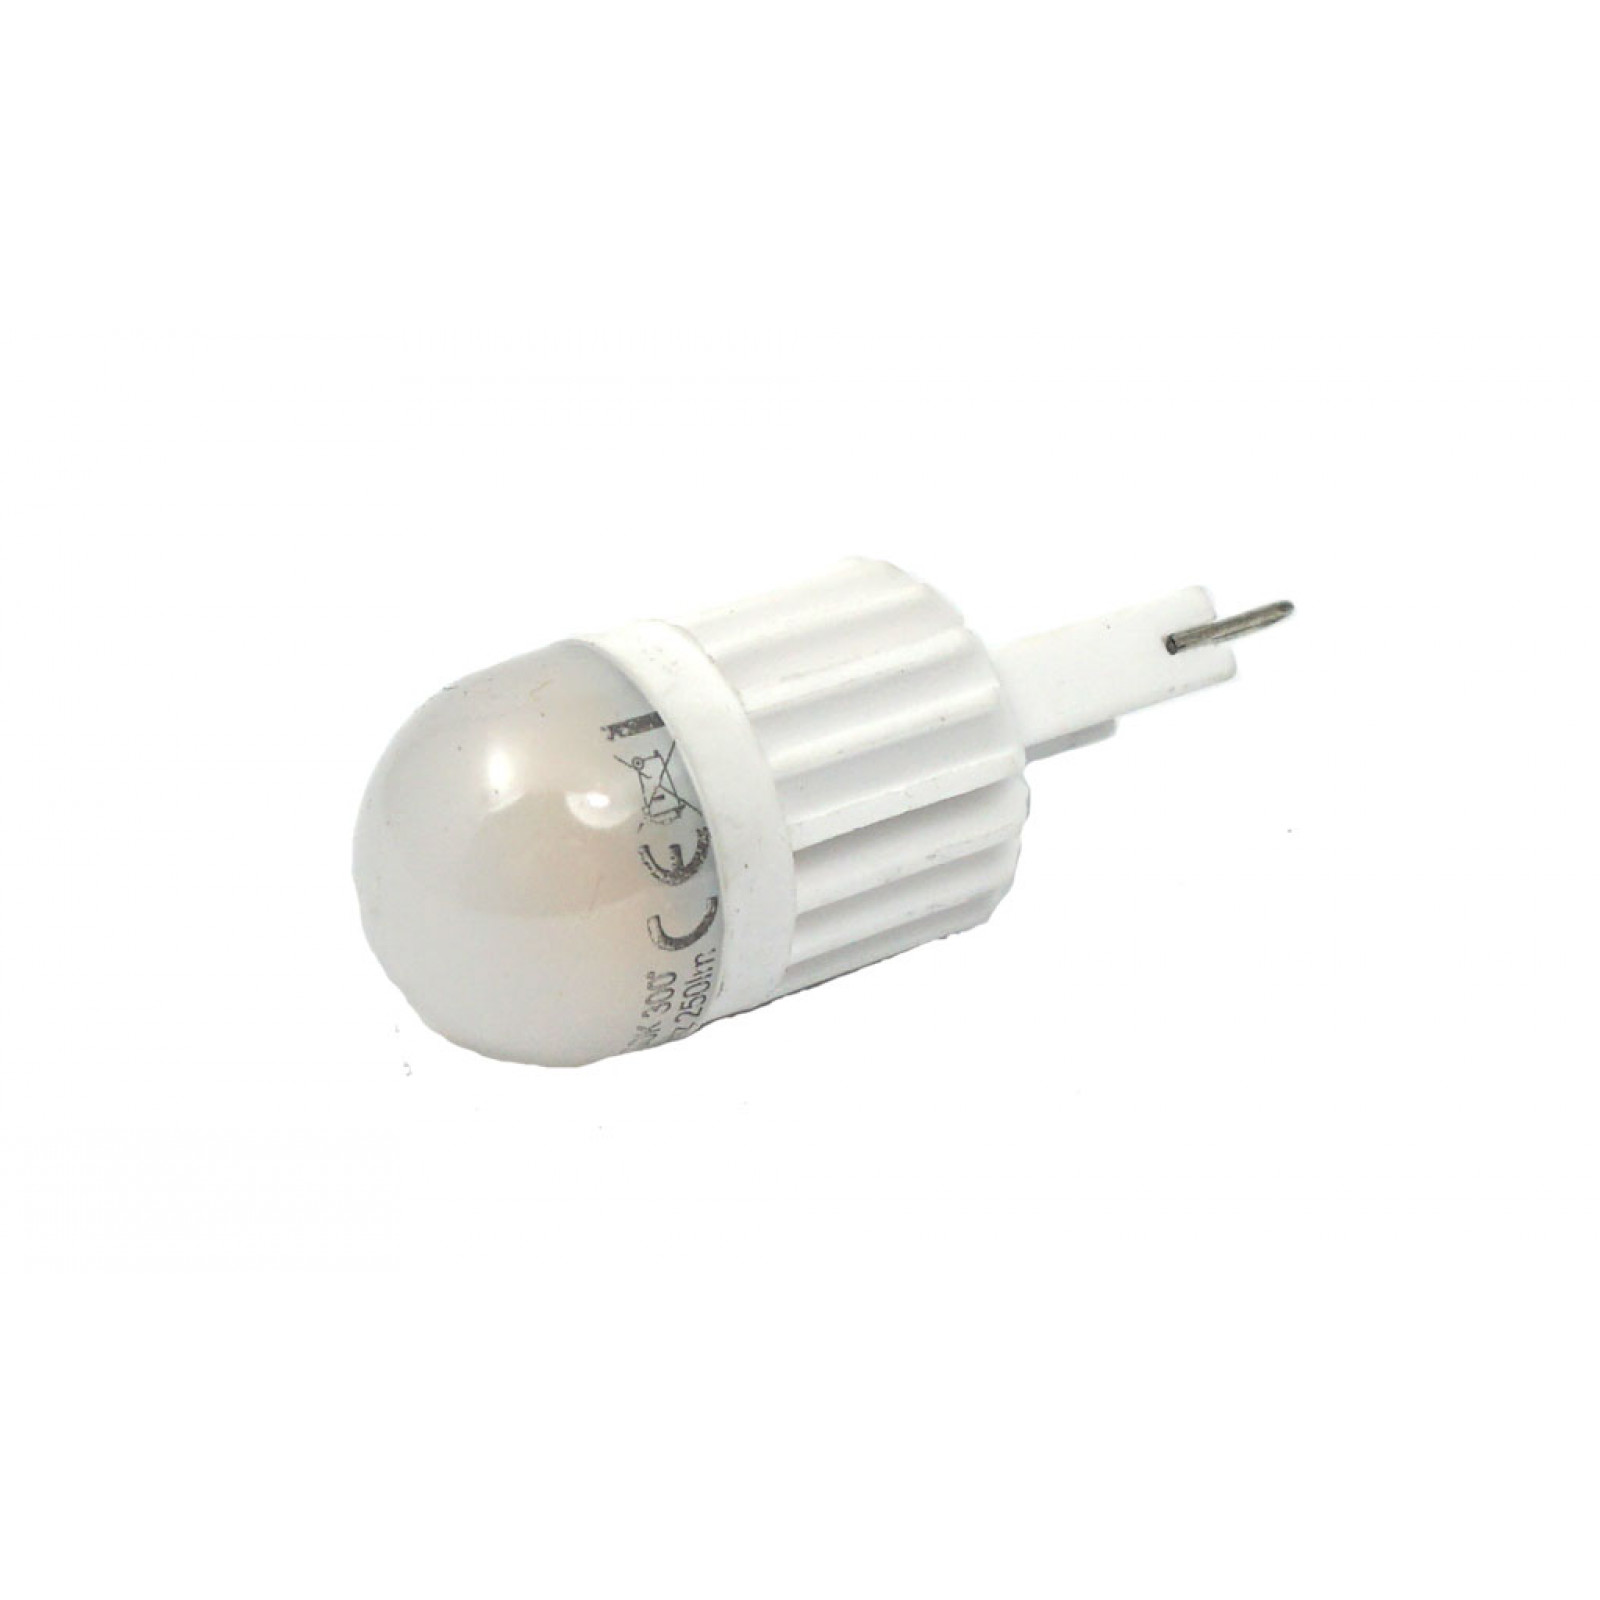 Realled Led G9 Lampe 3 5 Watt 240 Volt Ac 2700 K Warmweiß 270